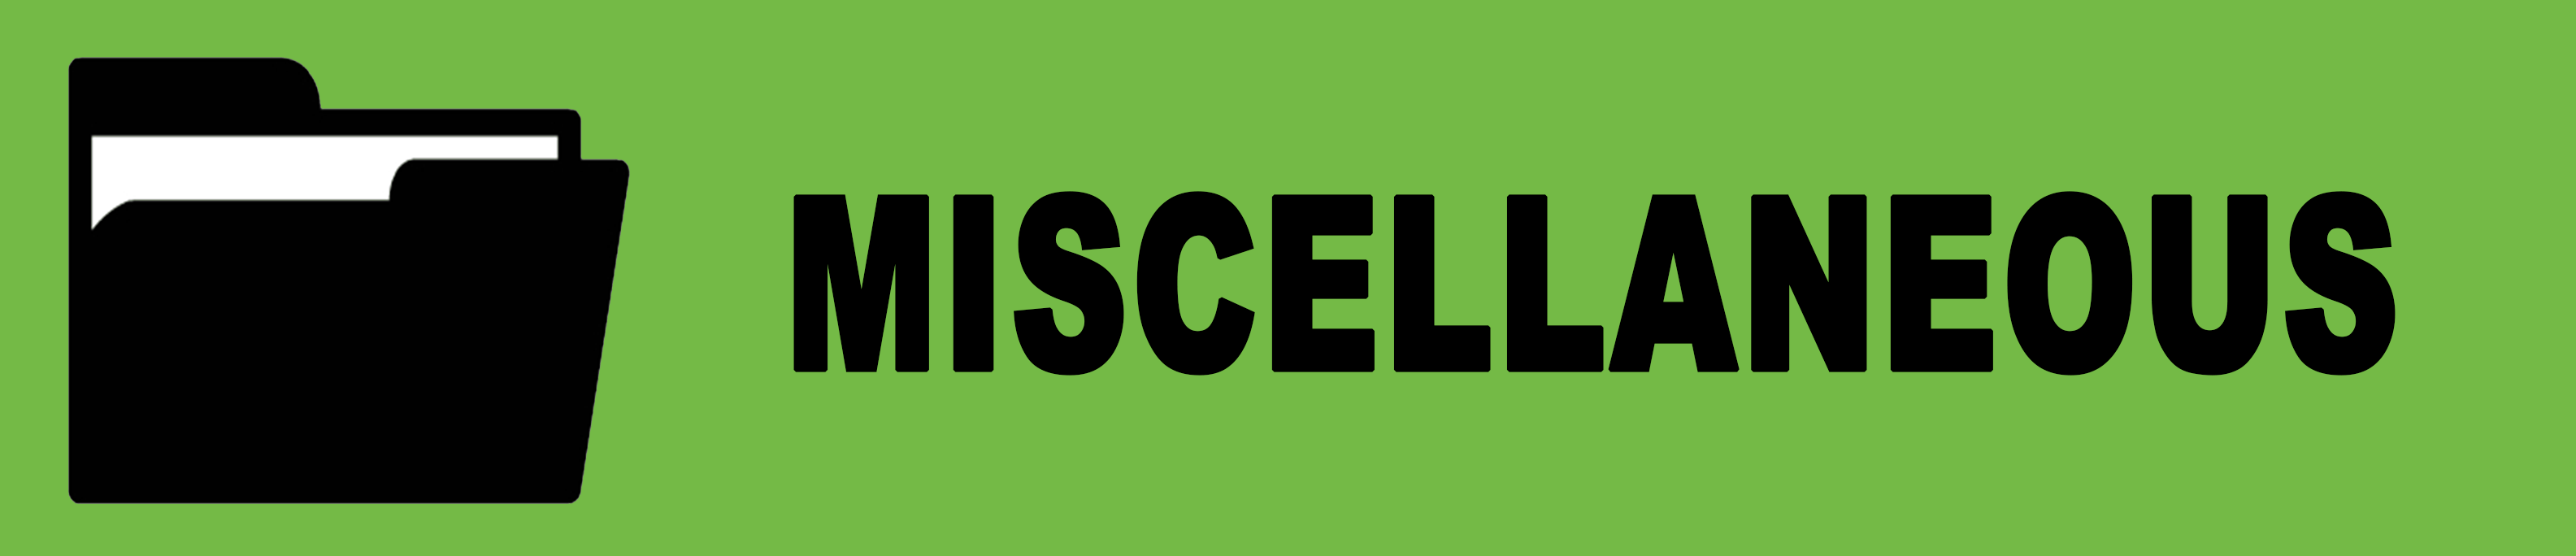 miscellaneous_banner_vector (1).png